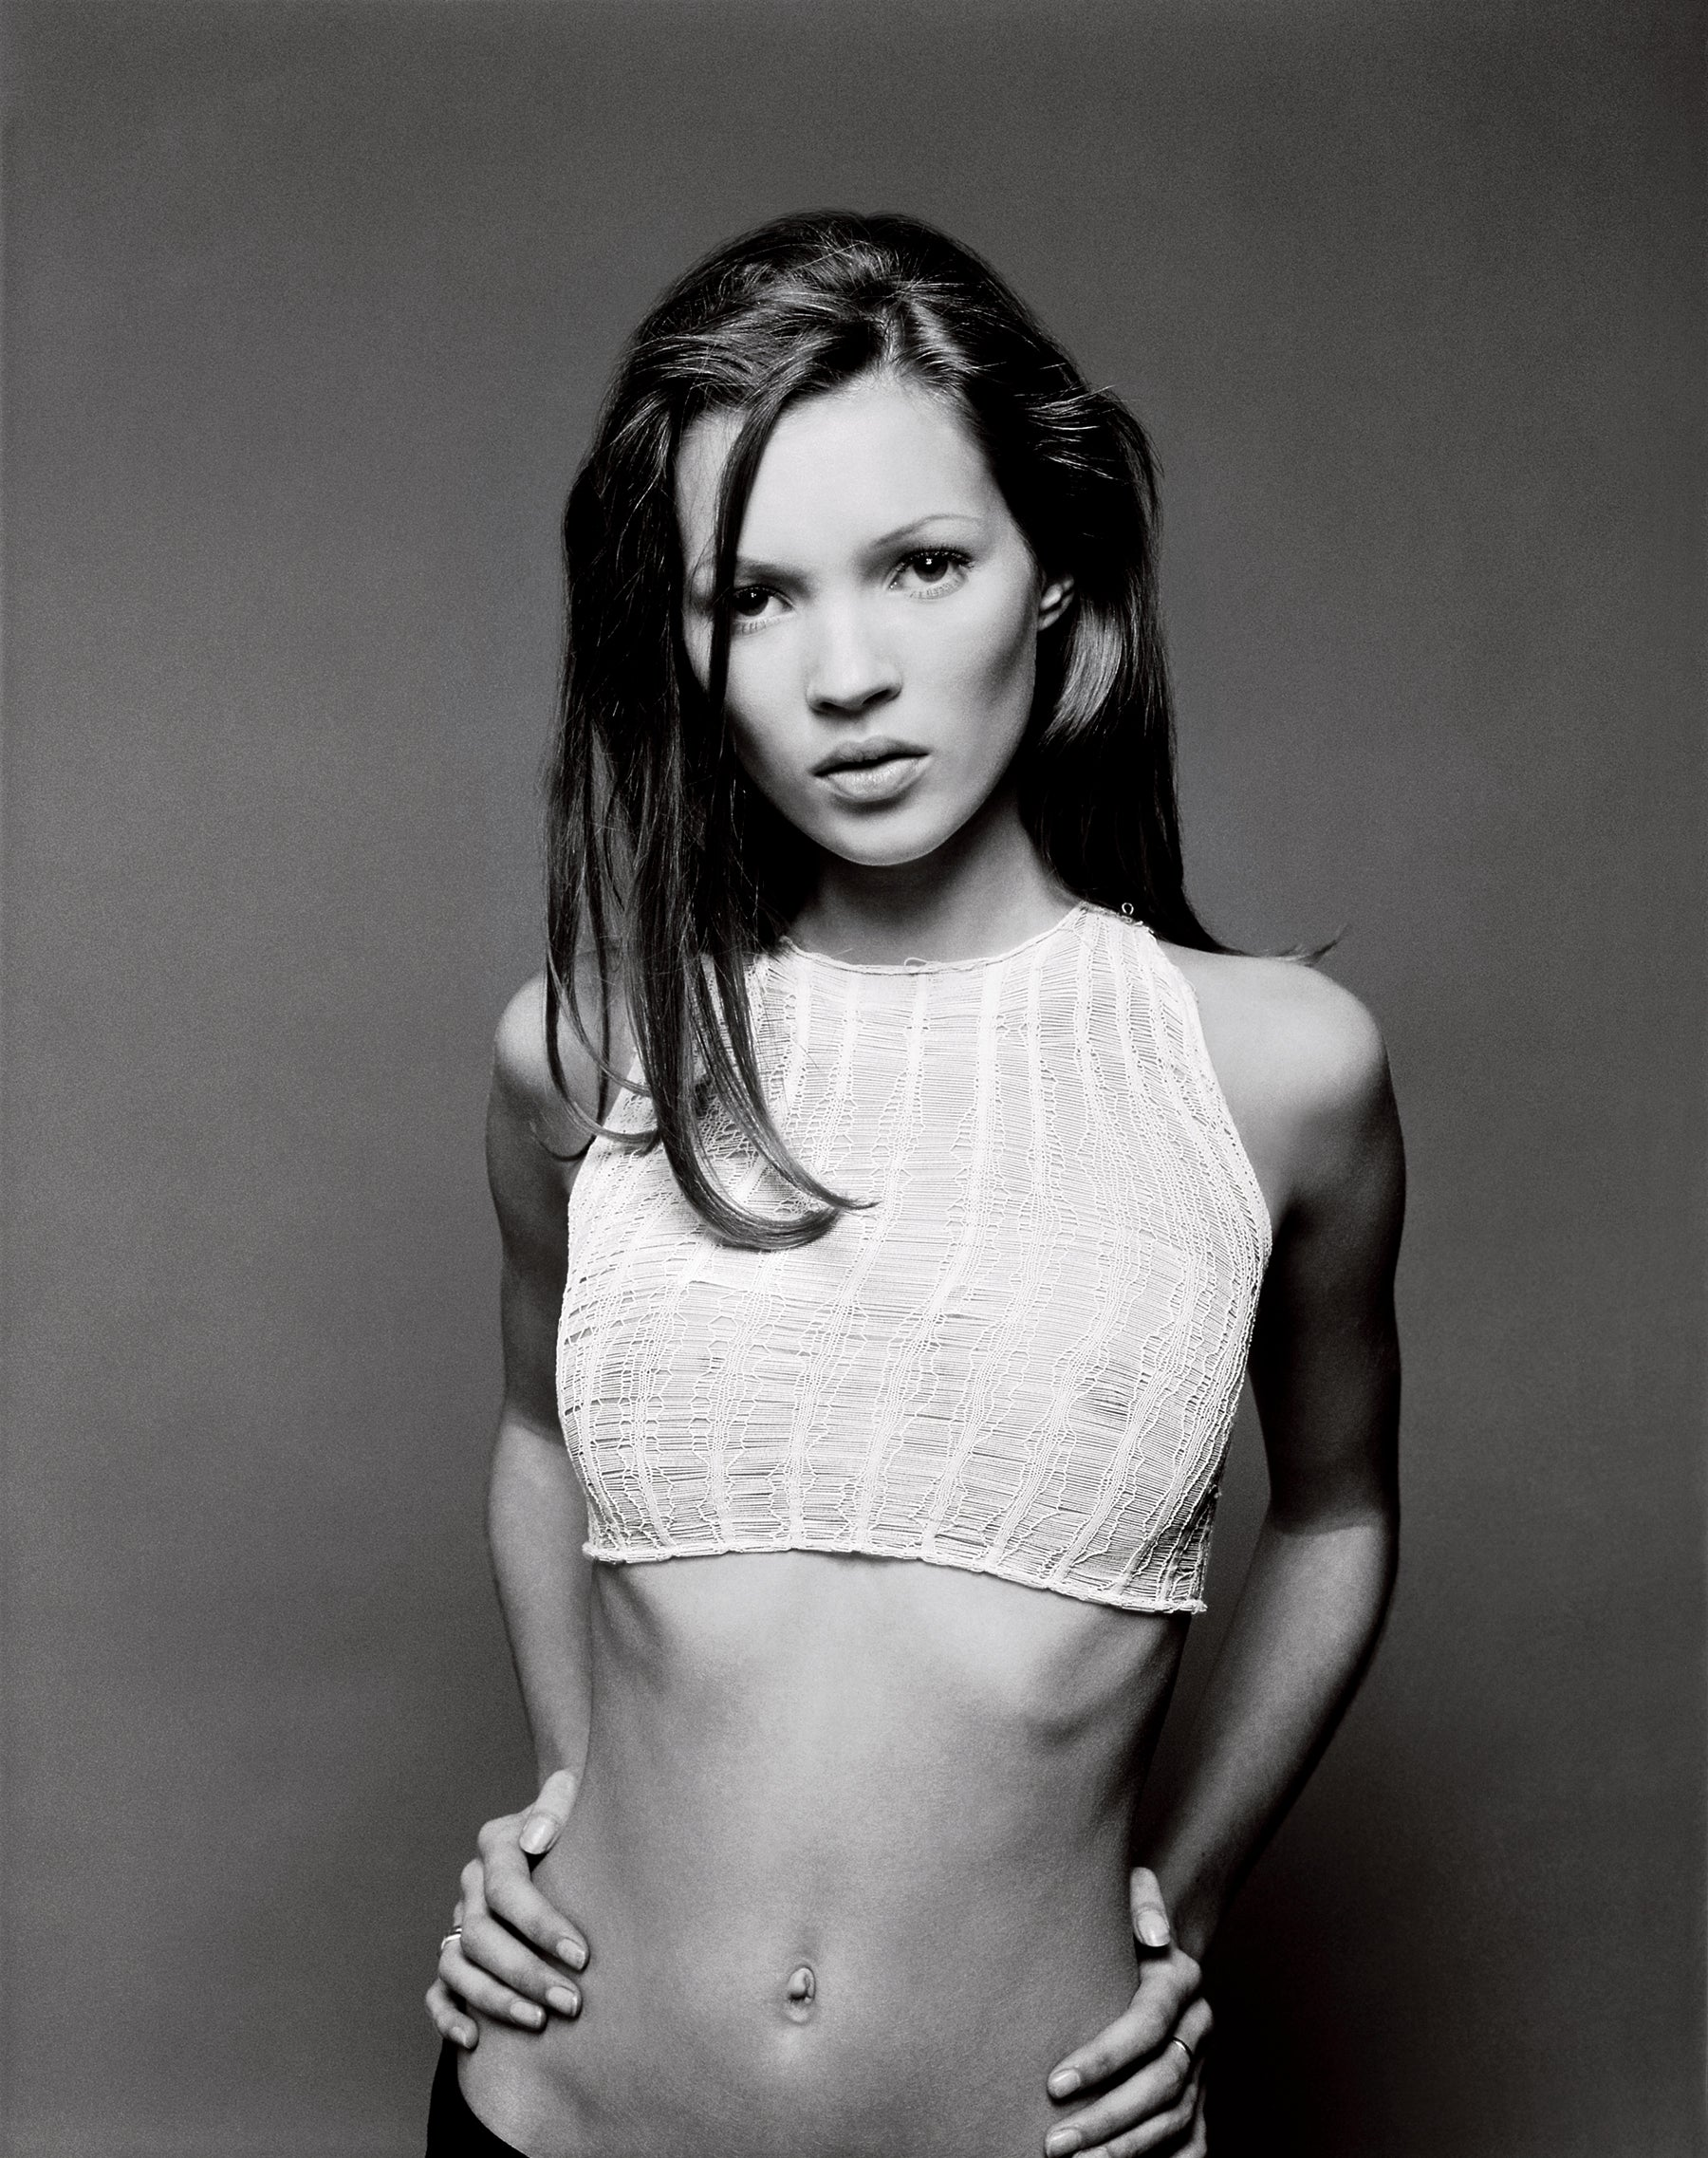 Kate Moss, West Village New York 1992